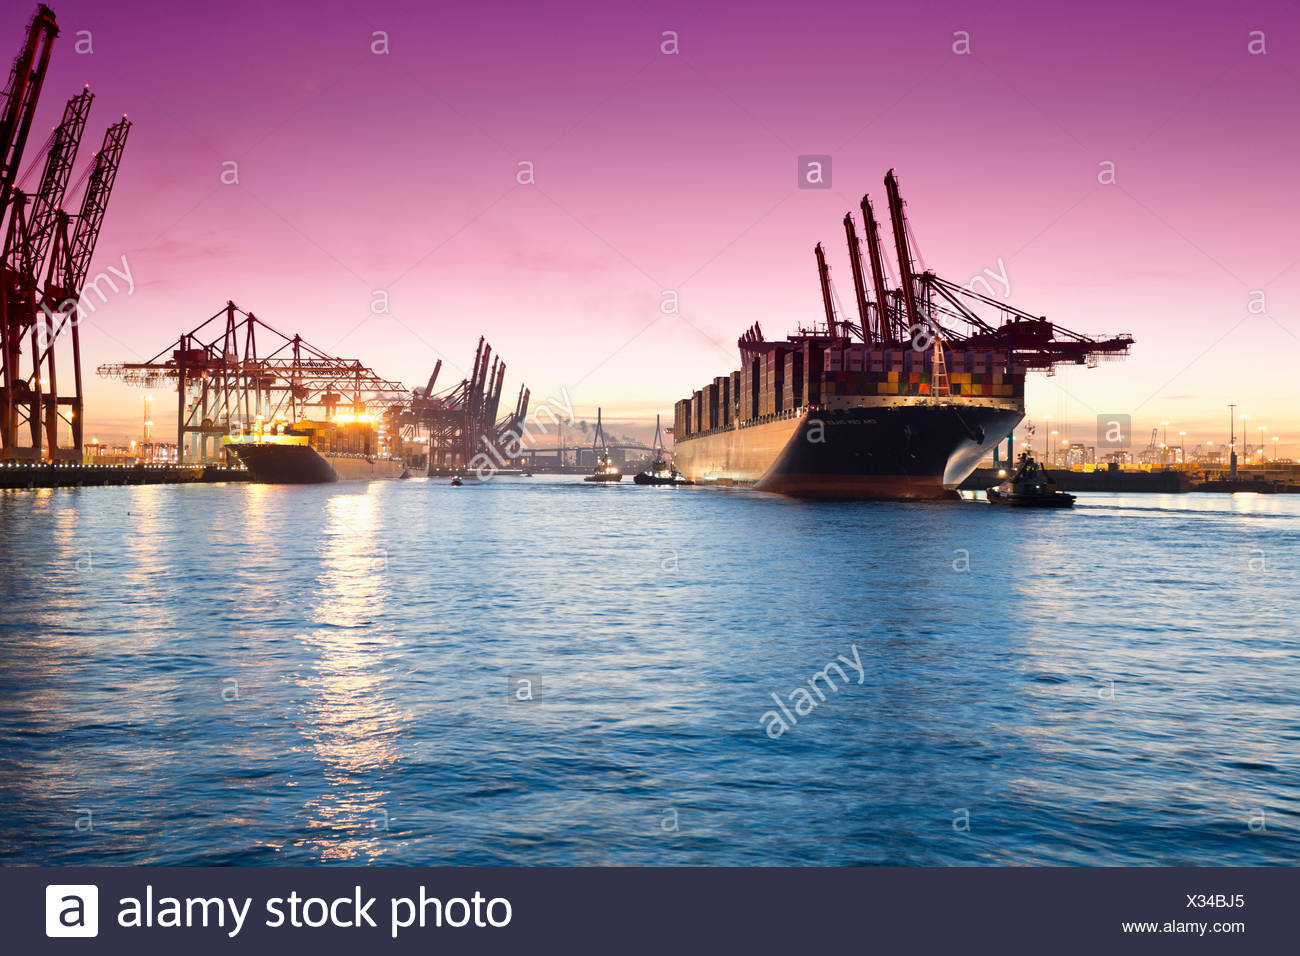 Germany, Hamburg, Parkhafen, harbour, Elbe, container ship - Stock Image